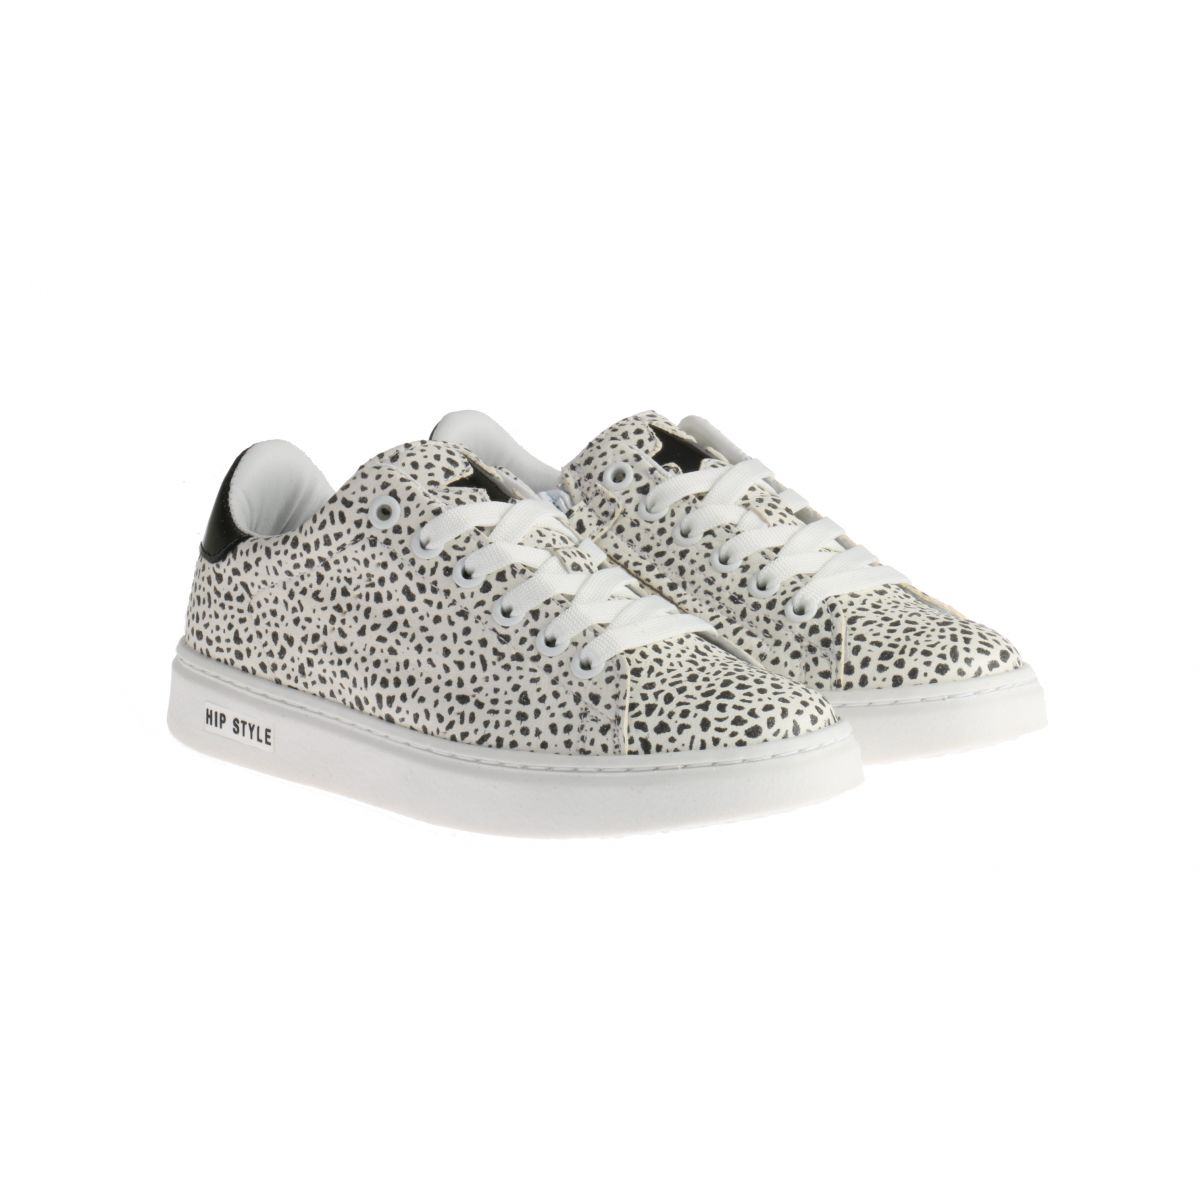 HIP H1253 Sneakers Giraffe Zwart-Wit